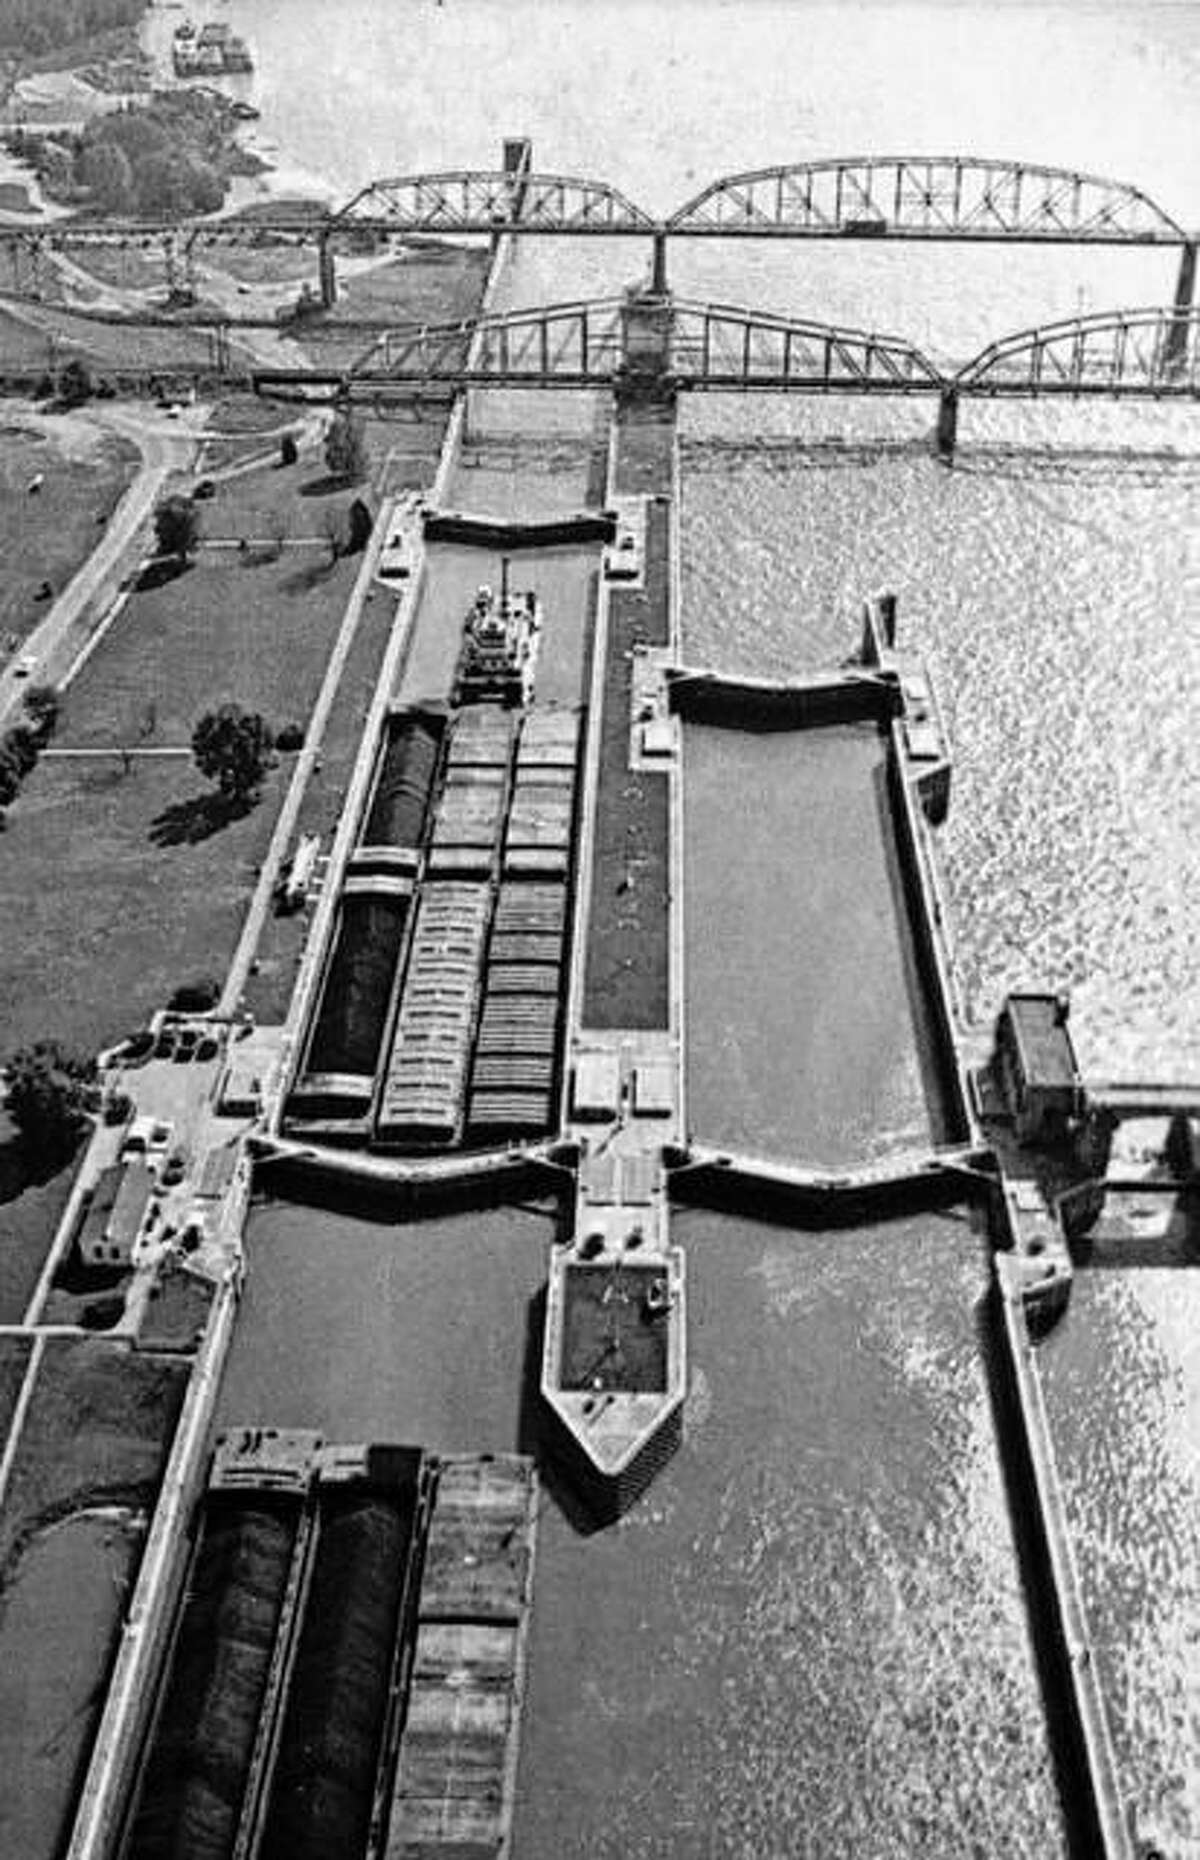 Barges pass through the Locks and Dam 26 at the Alton riverfront. The old Clark Bridge and railroad can also be seen.